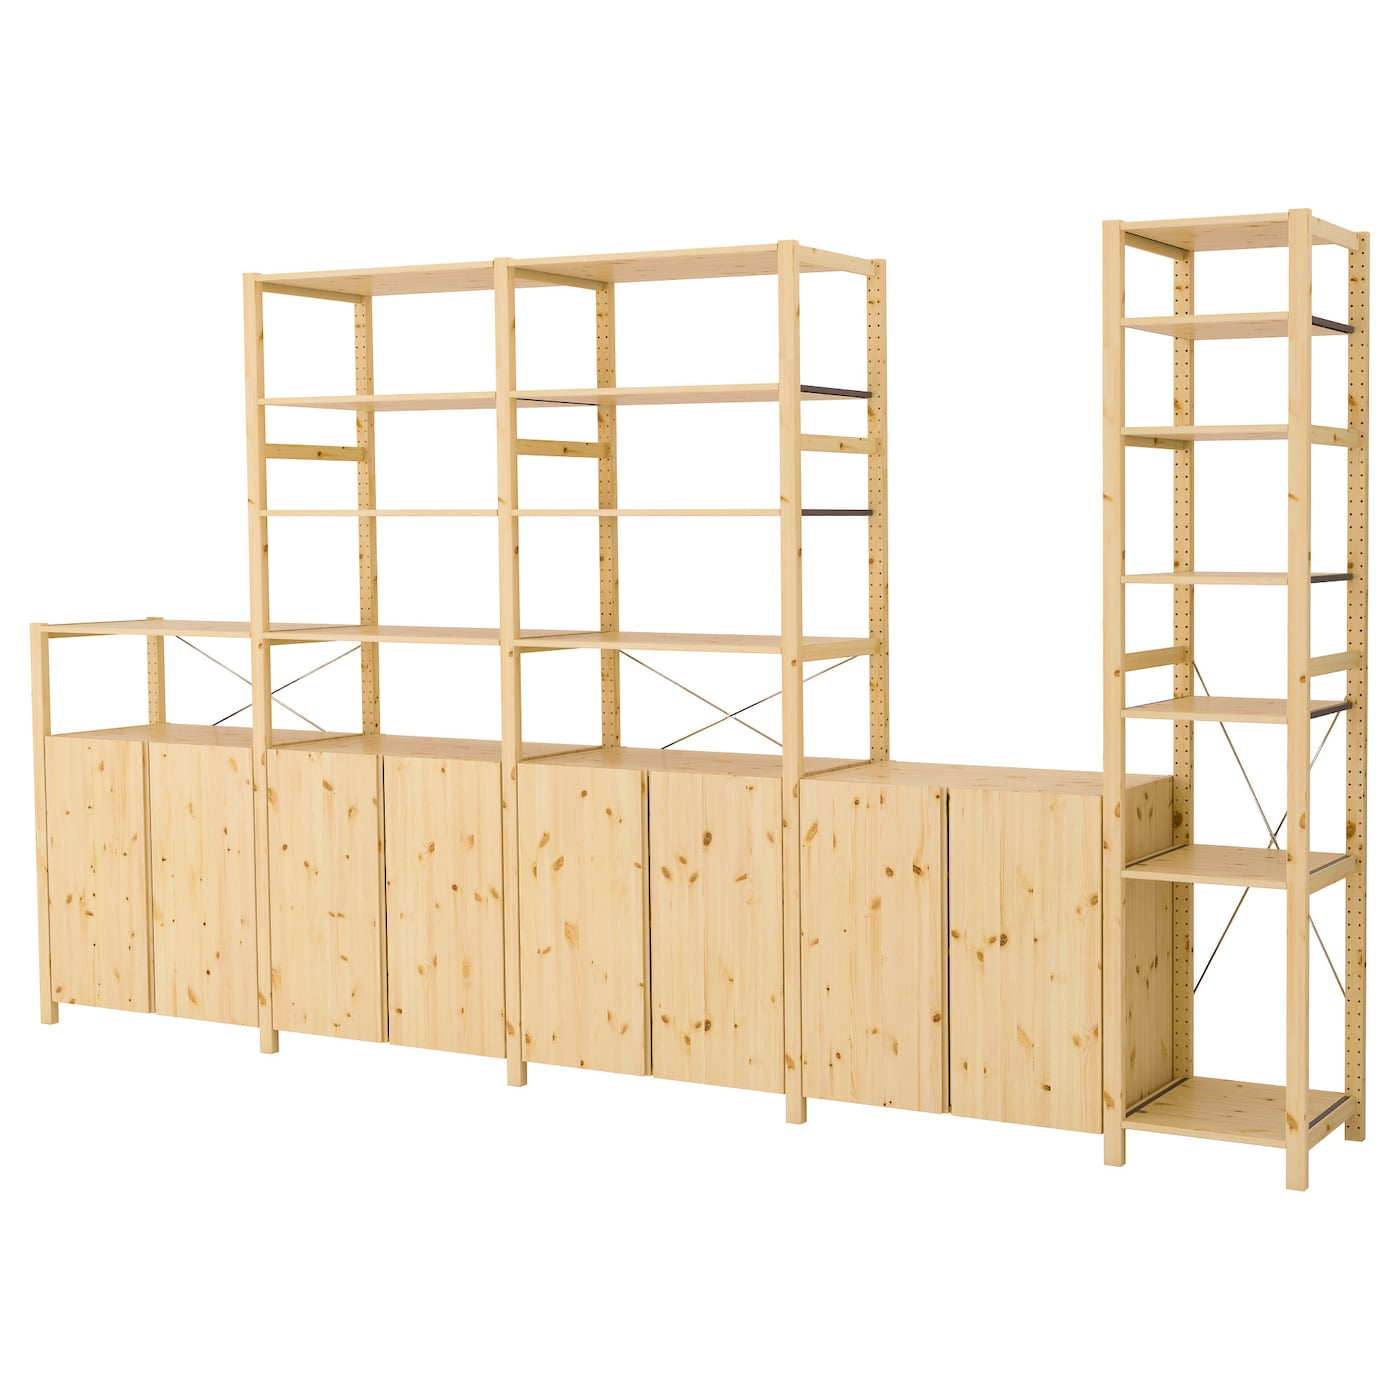 Ivar 5 sections shelves cabinets pine 389x50x226 cm ikea for Ladenblok ivar ikea